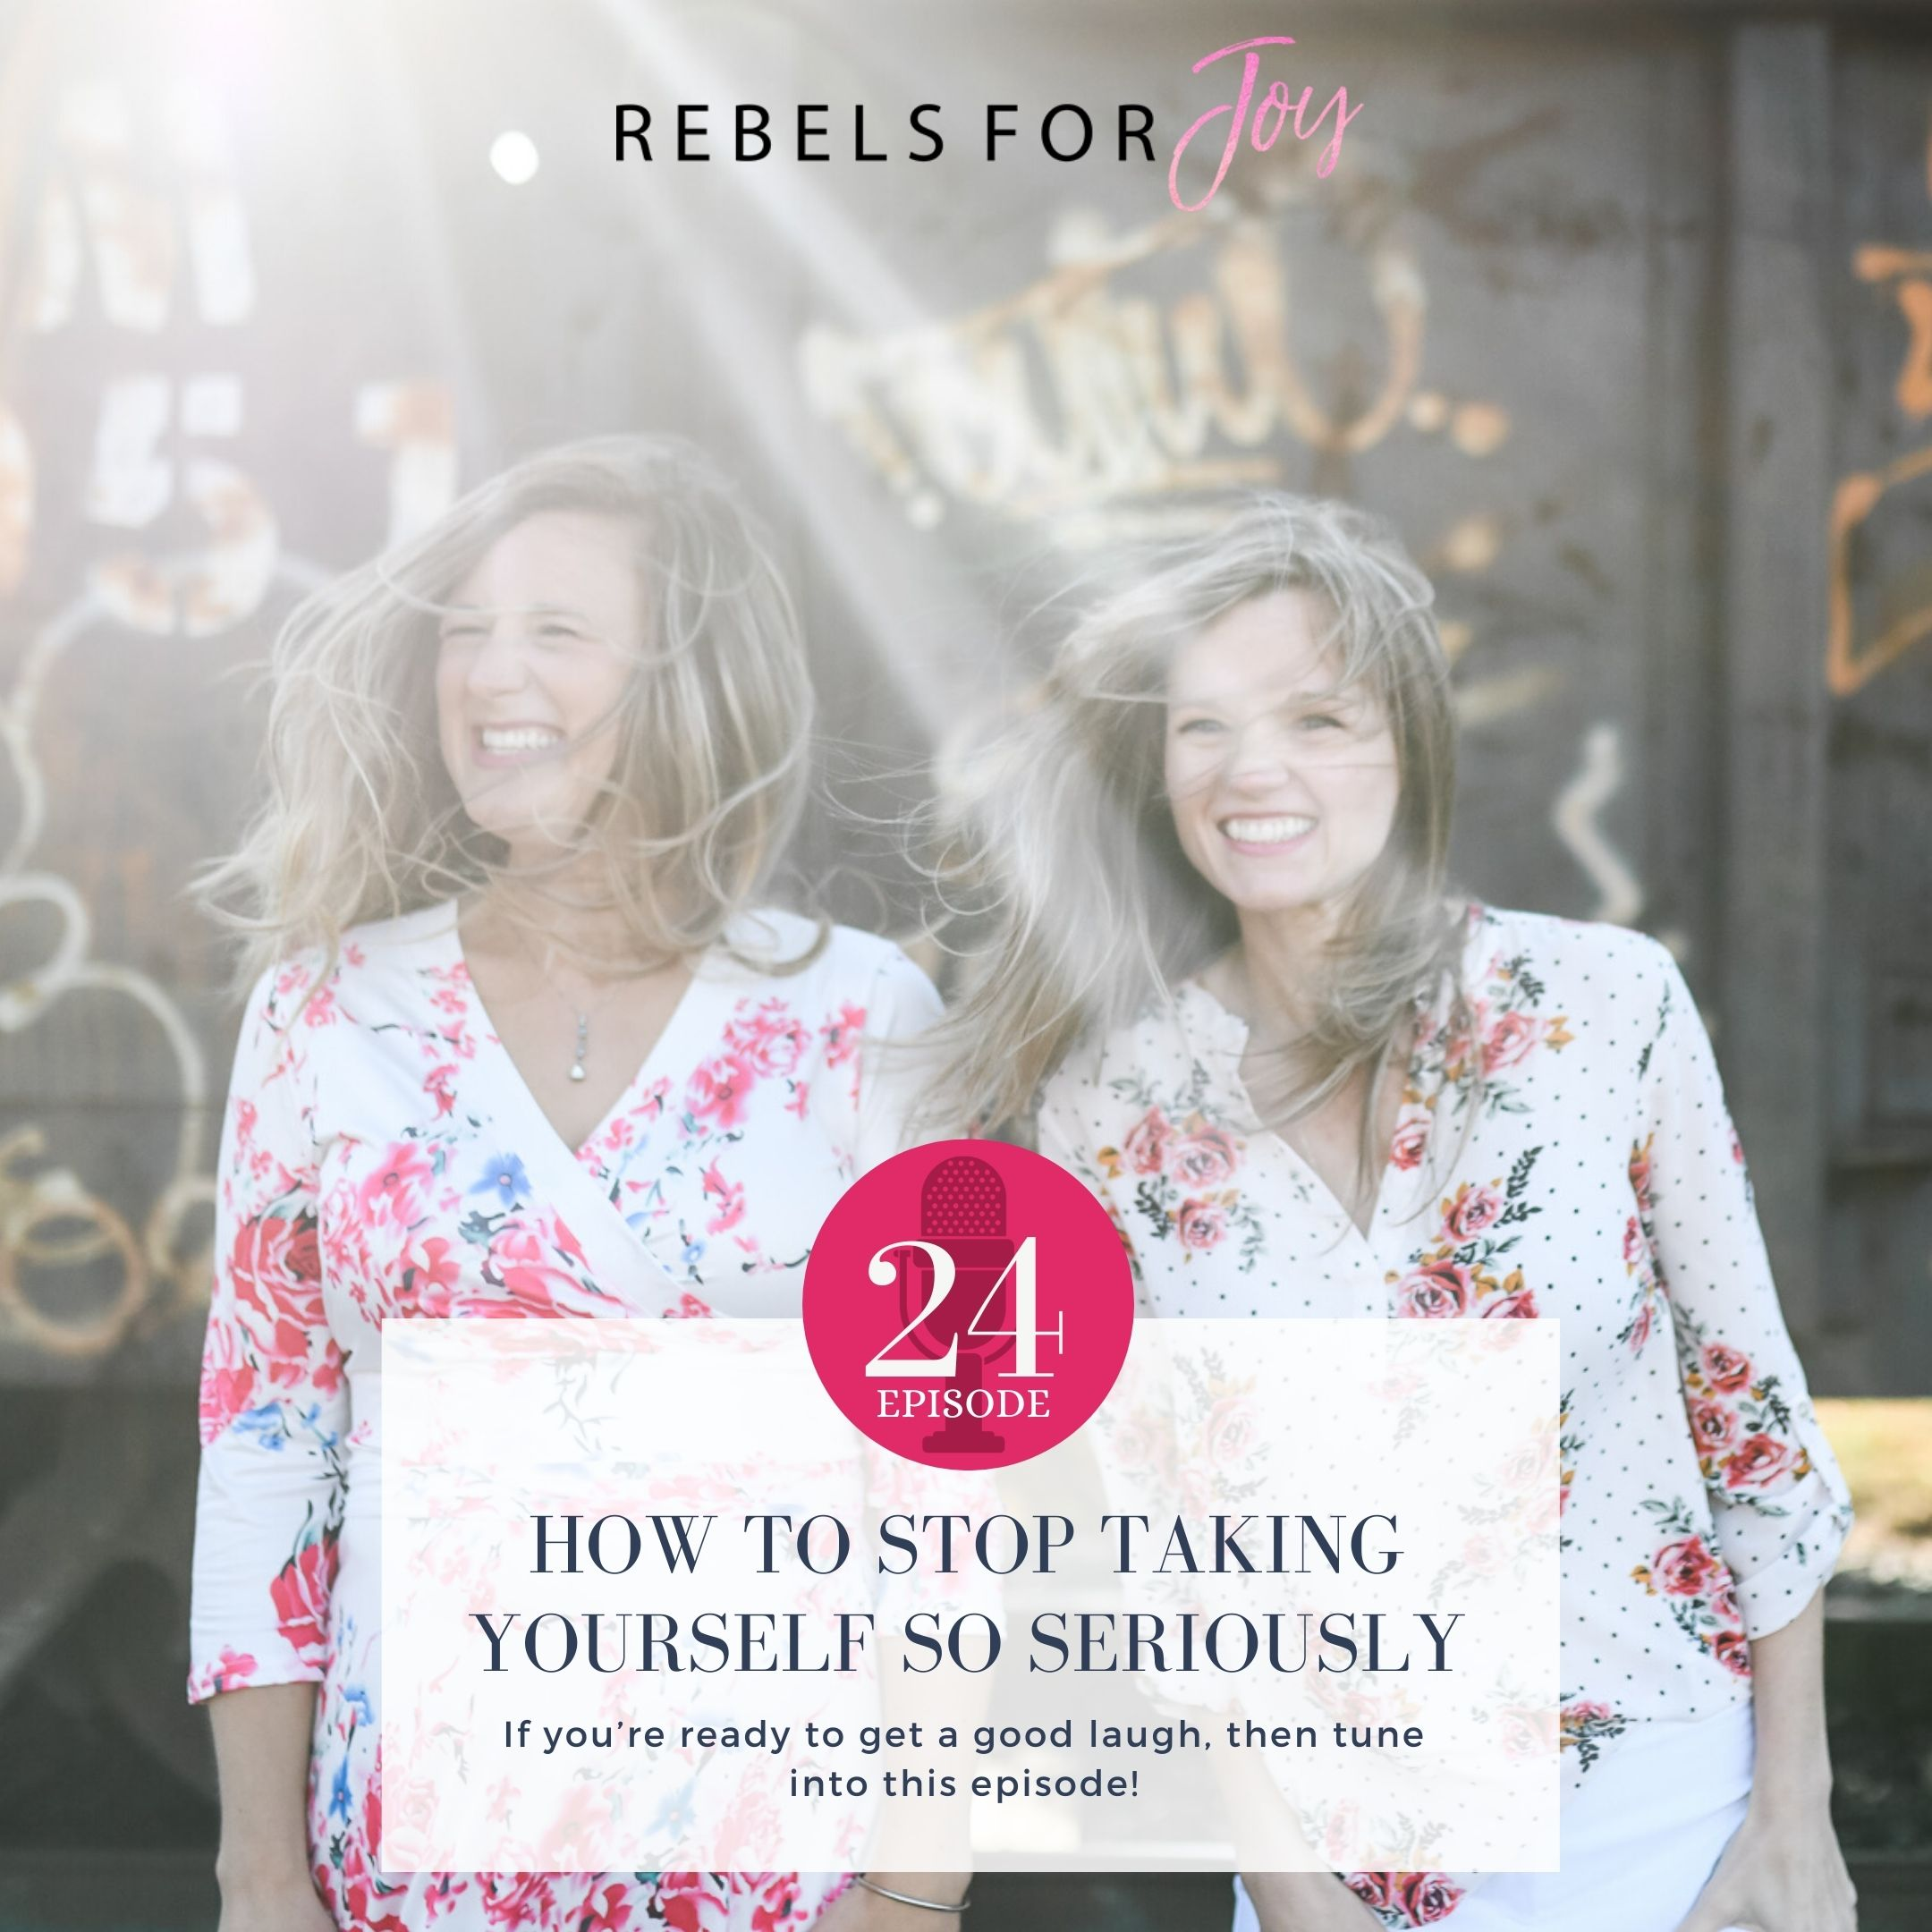 Episode 24: How to Stop Taking Yourself so Seriously